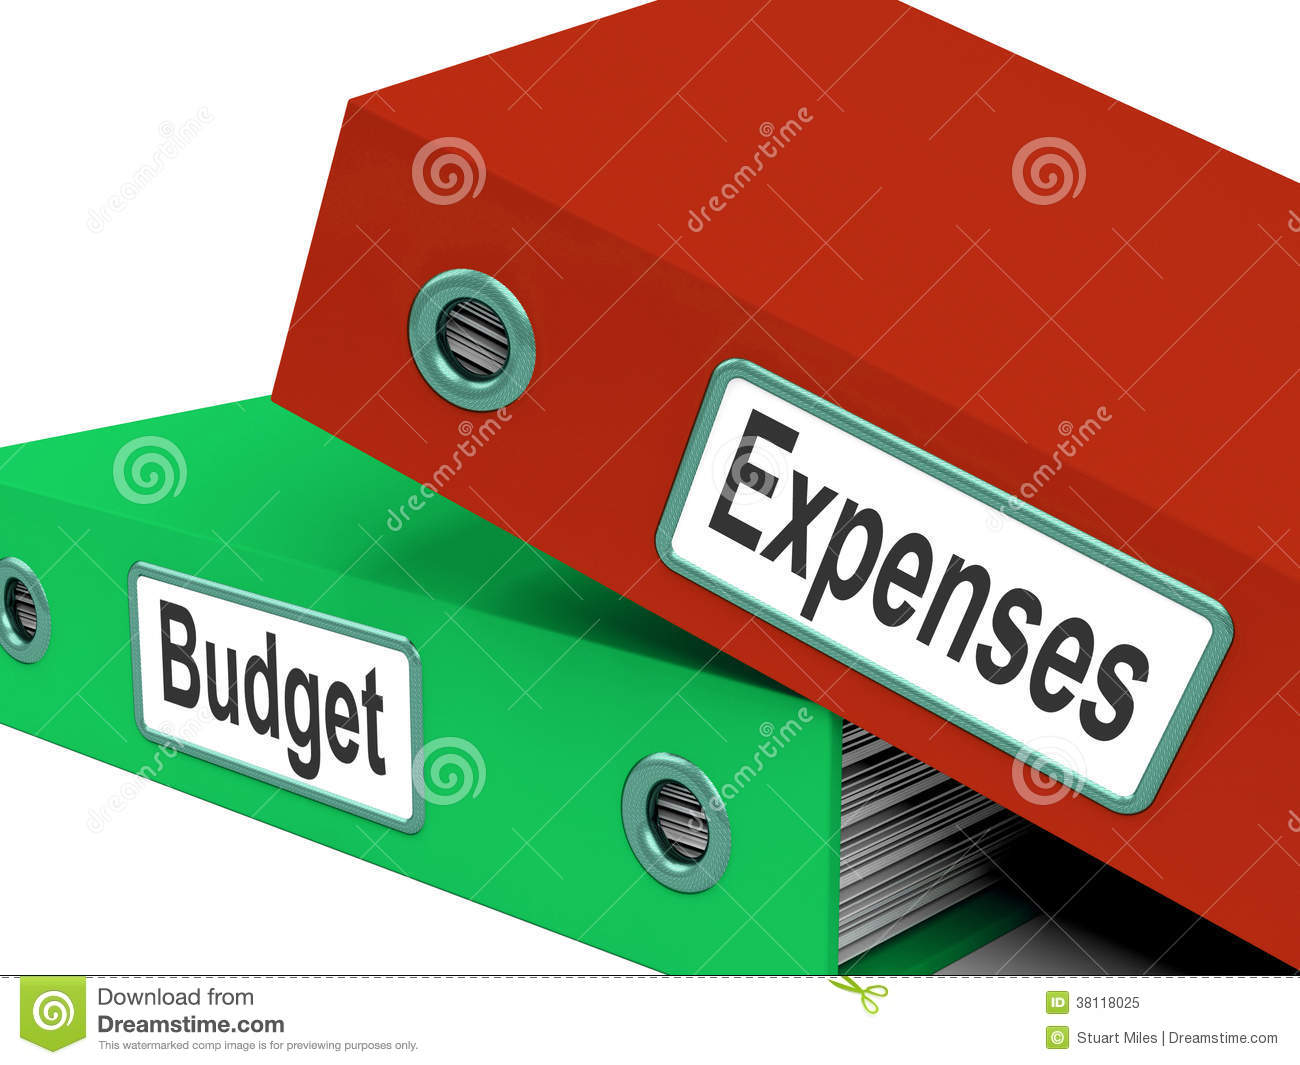 budget-expenses-folders-mean-business-finances-budgeting-meaning-38118025.jpg